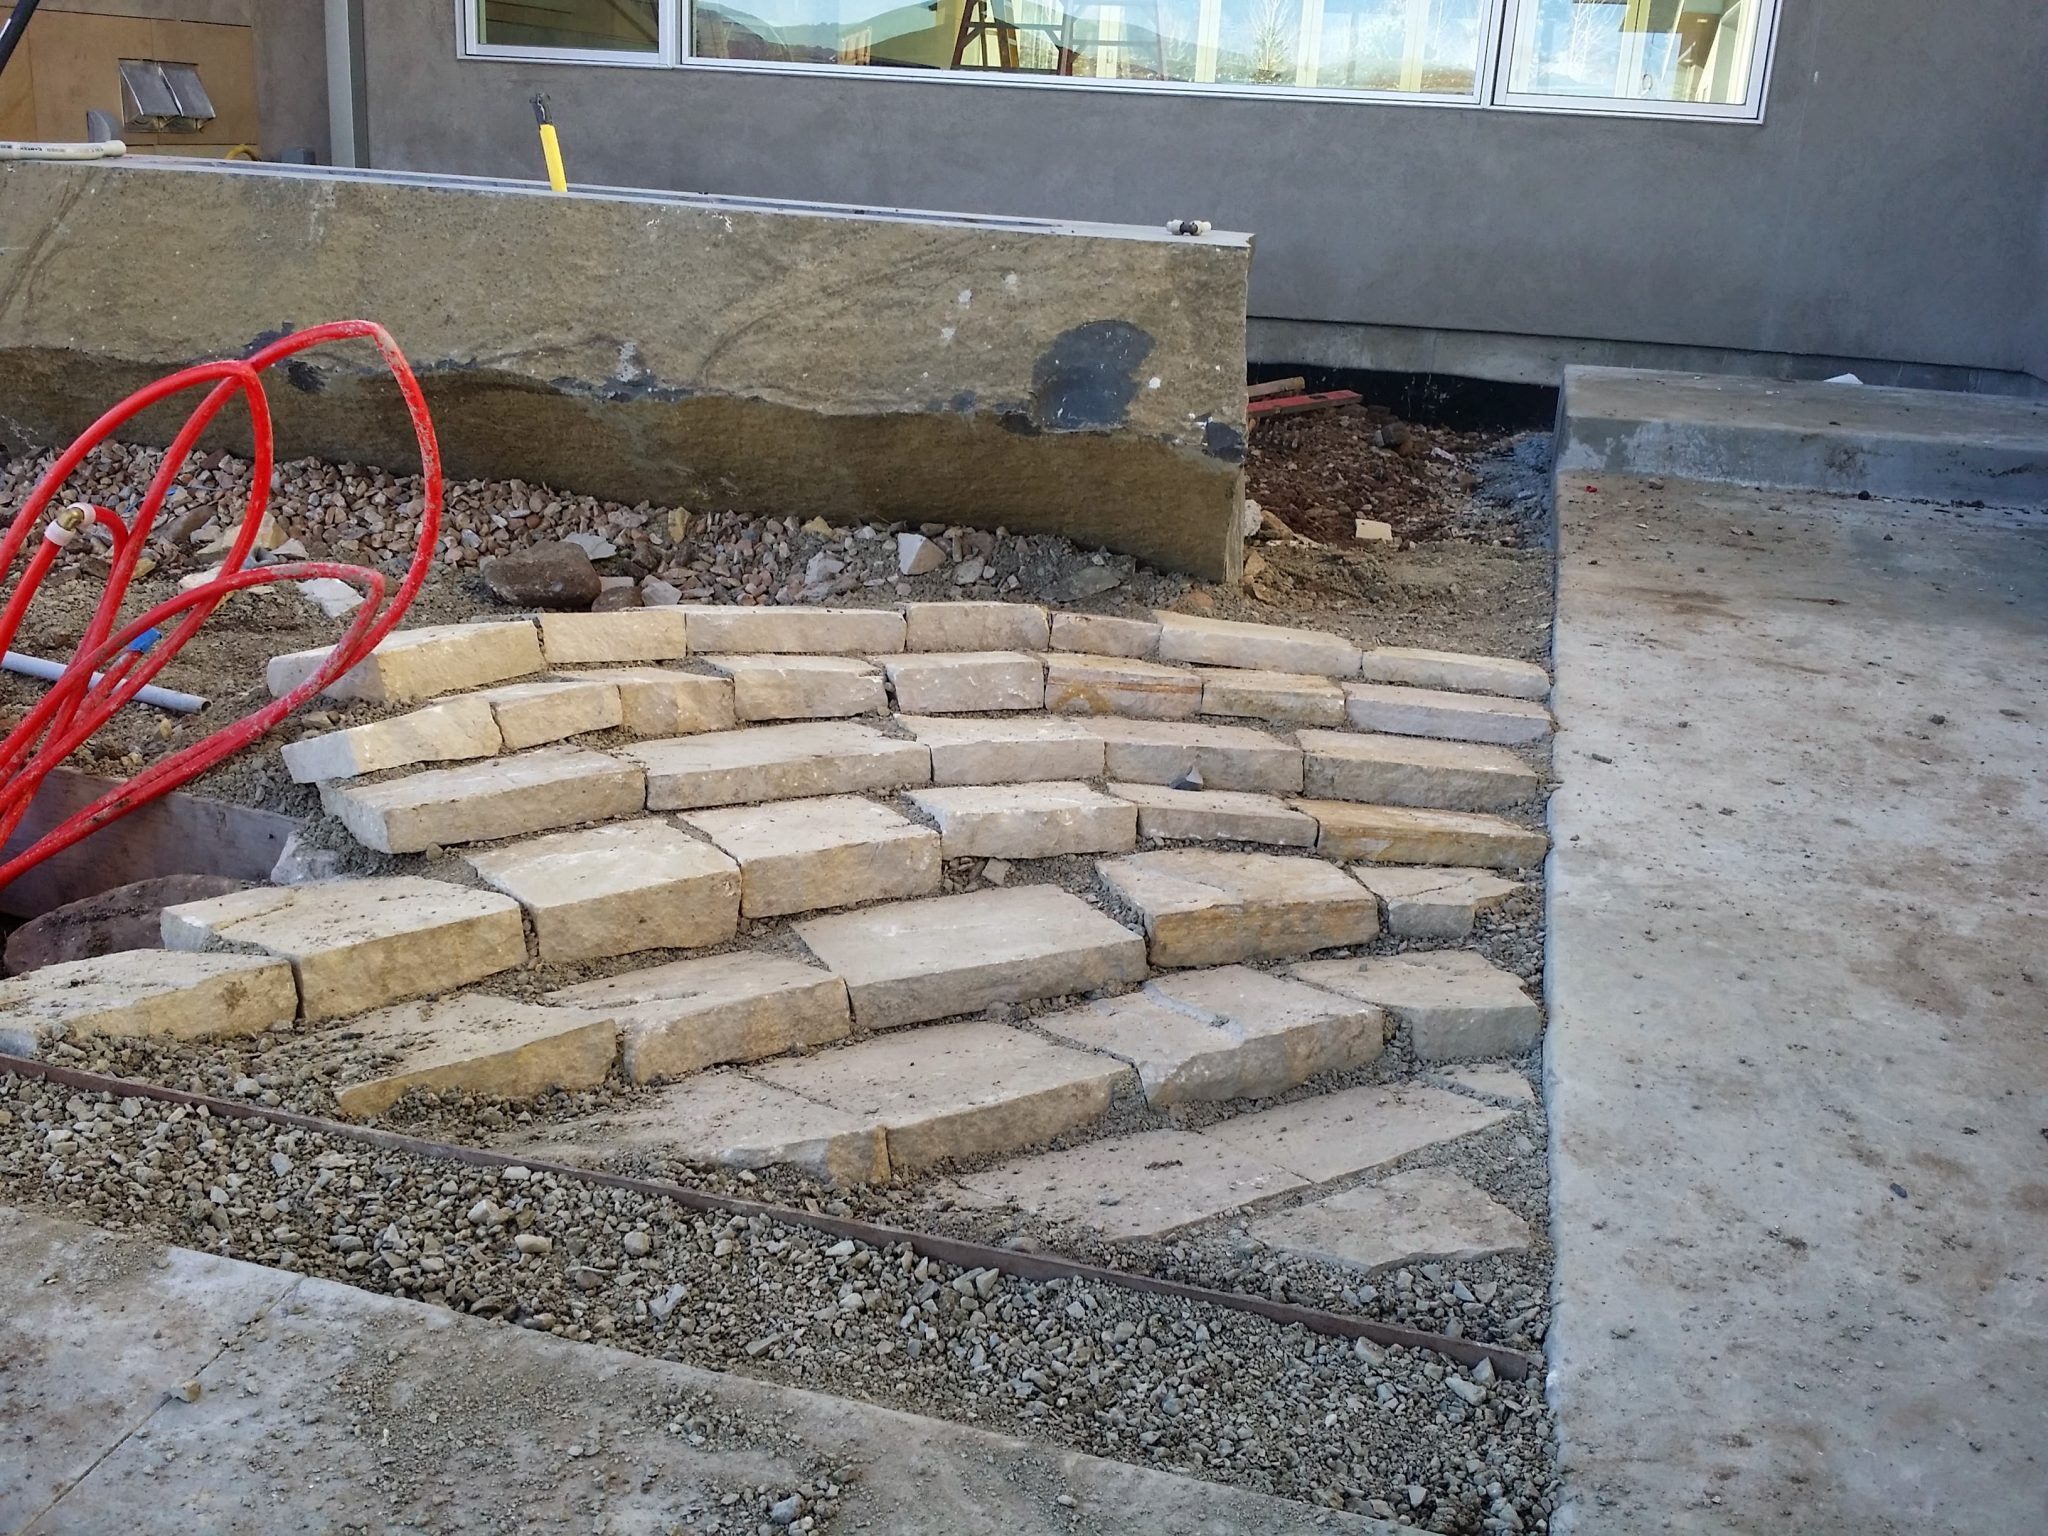 Contractors second attempt at laid stone mulch